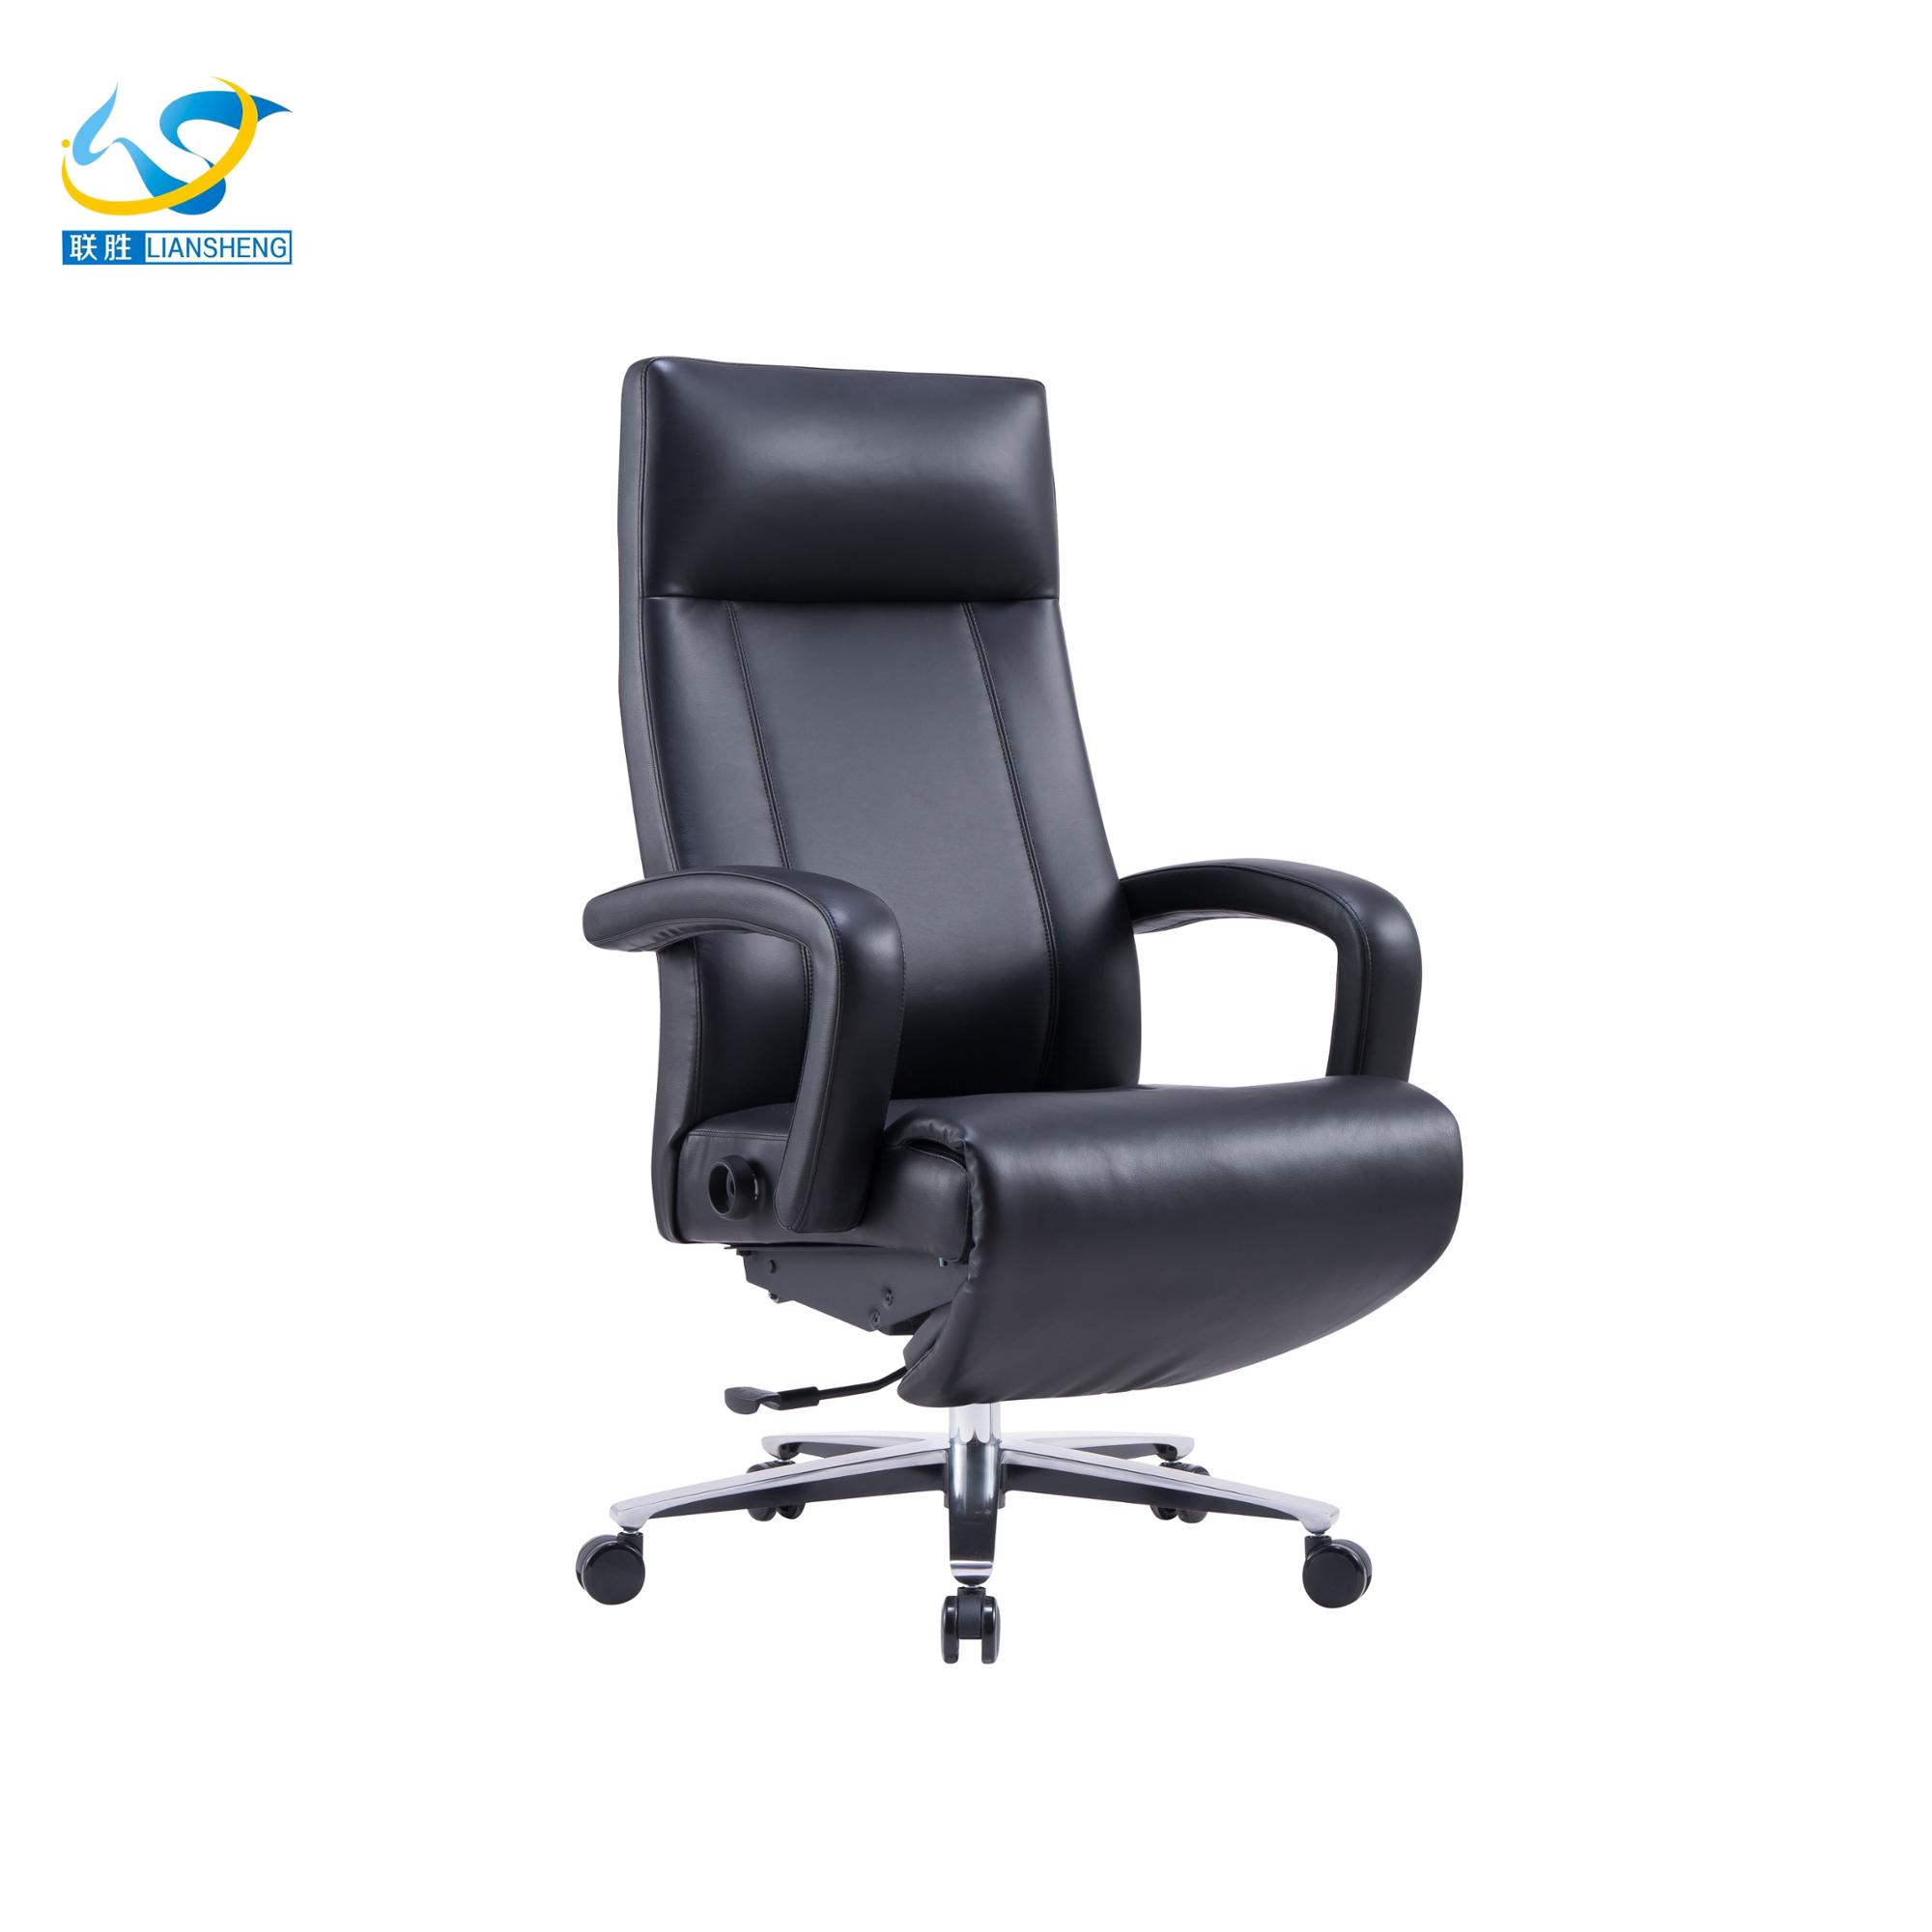 office chair types rattan swing double of chairs pictures wholesale suppliers alibaba